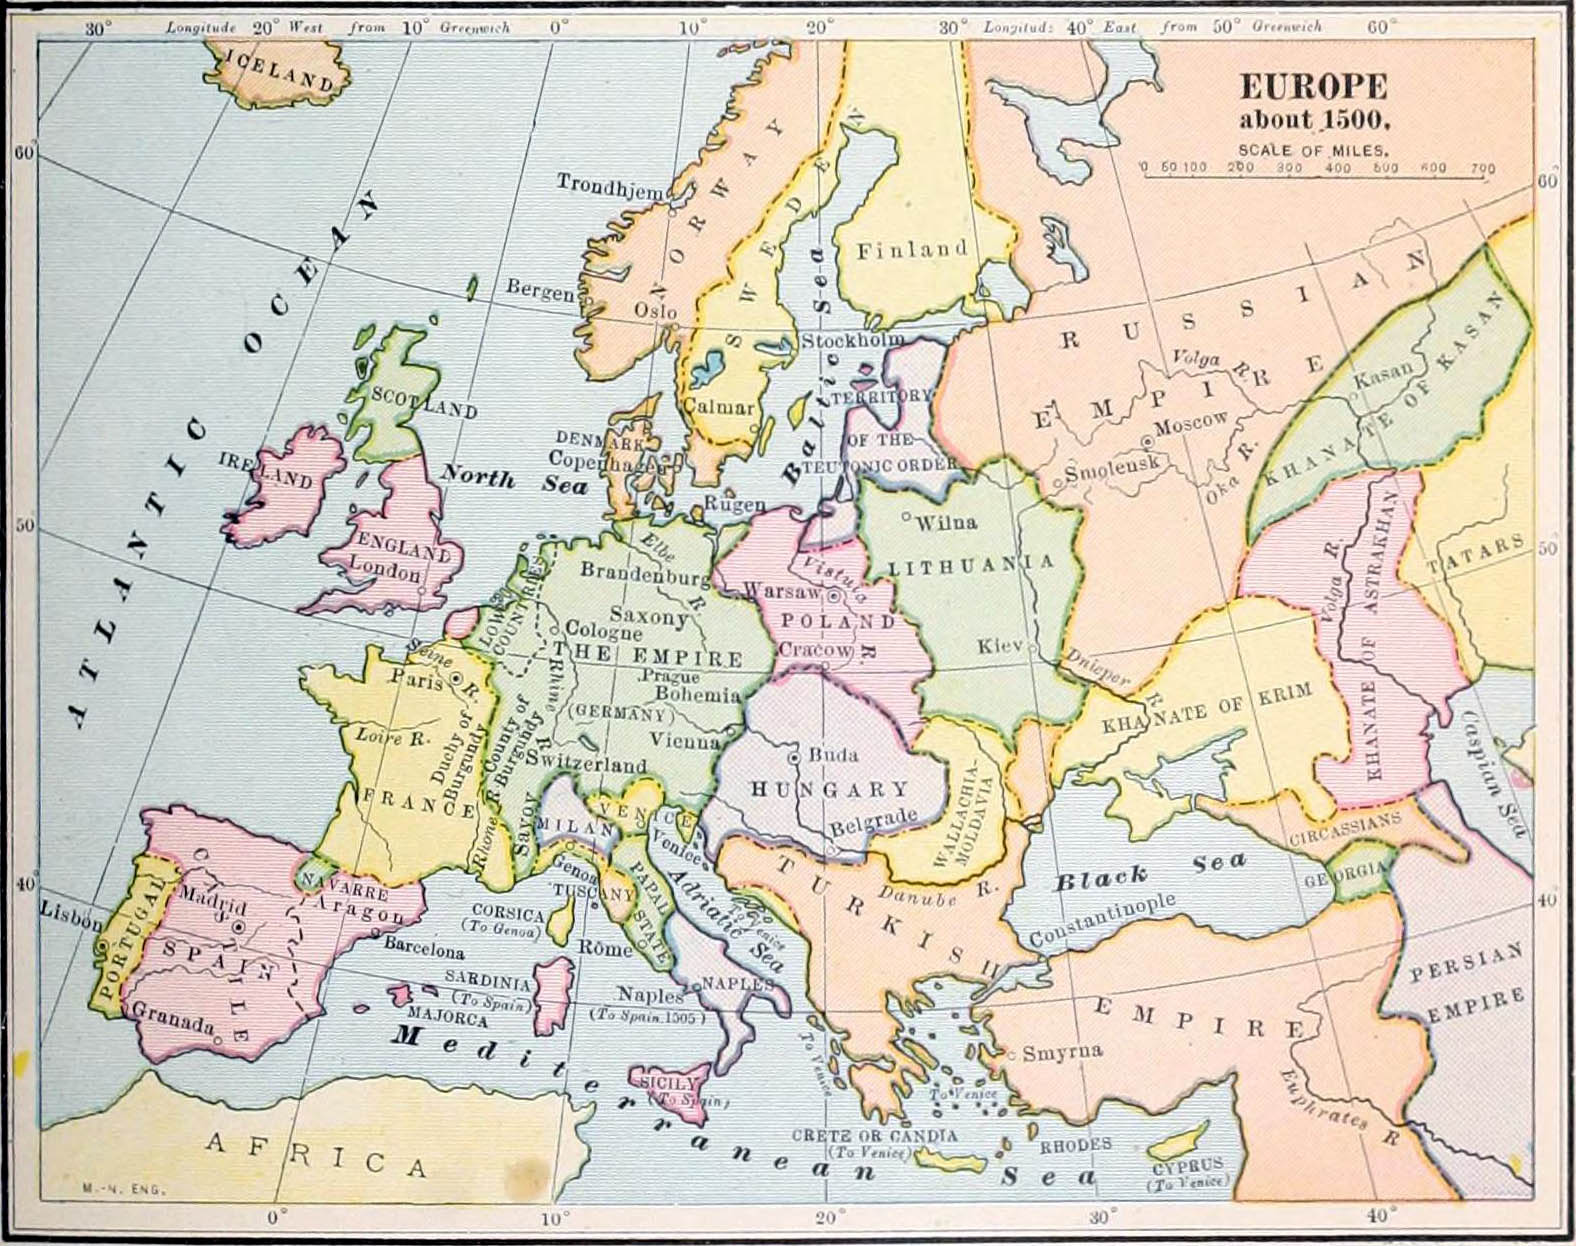 File:NIE 1905 Europe - About 1500.jpg - Wikimedia Commons